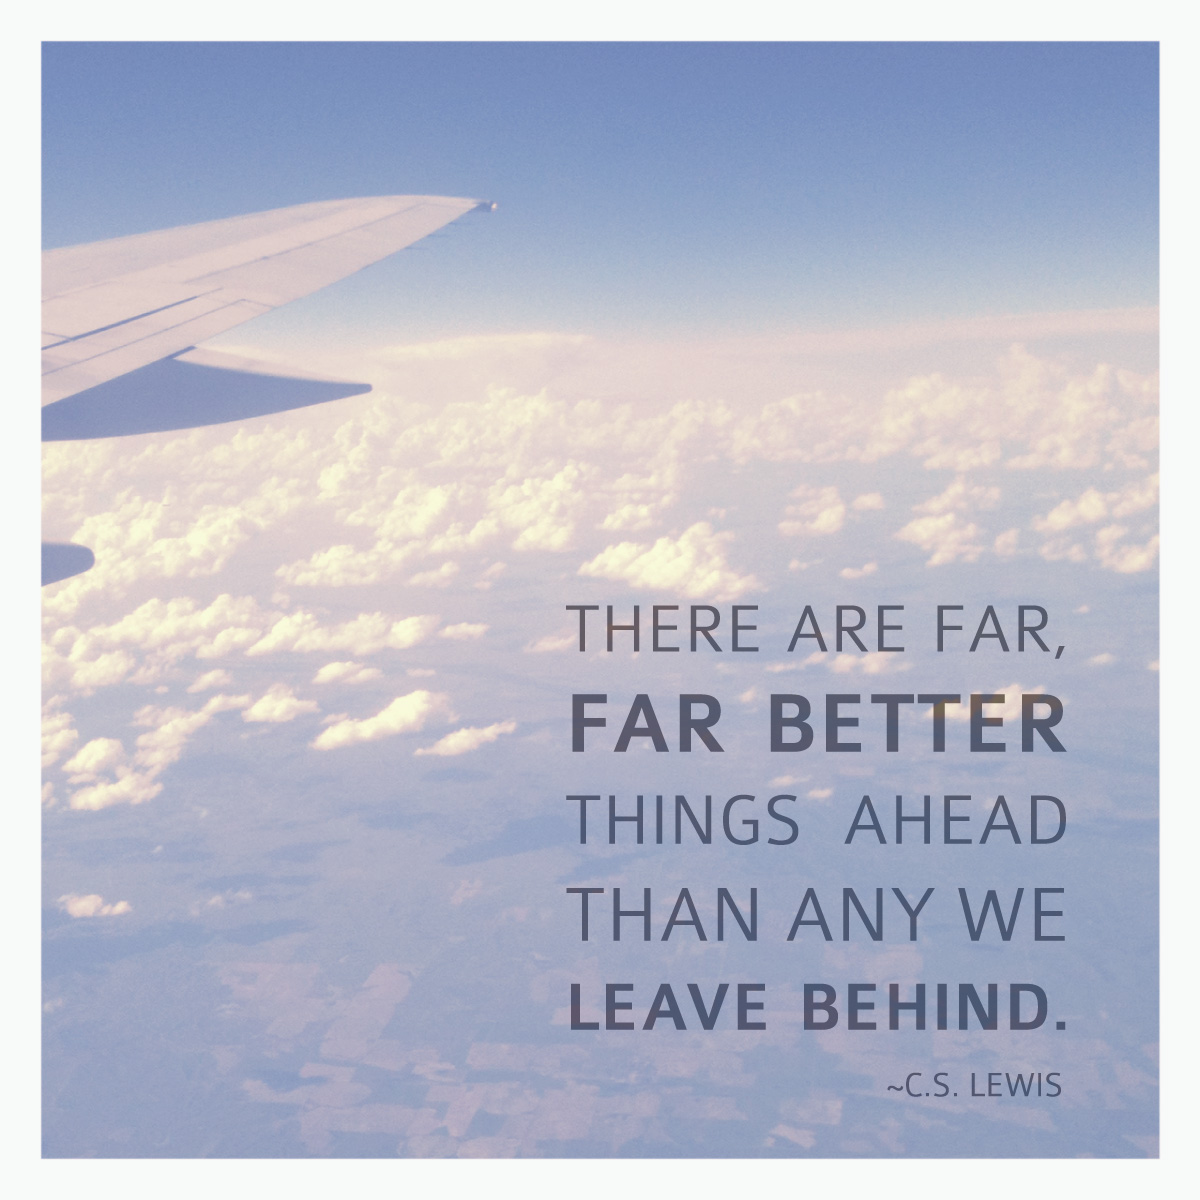 Cs Lewis Quotes On Life Far Better Things In The Future  The Best Collection Of Quotes